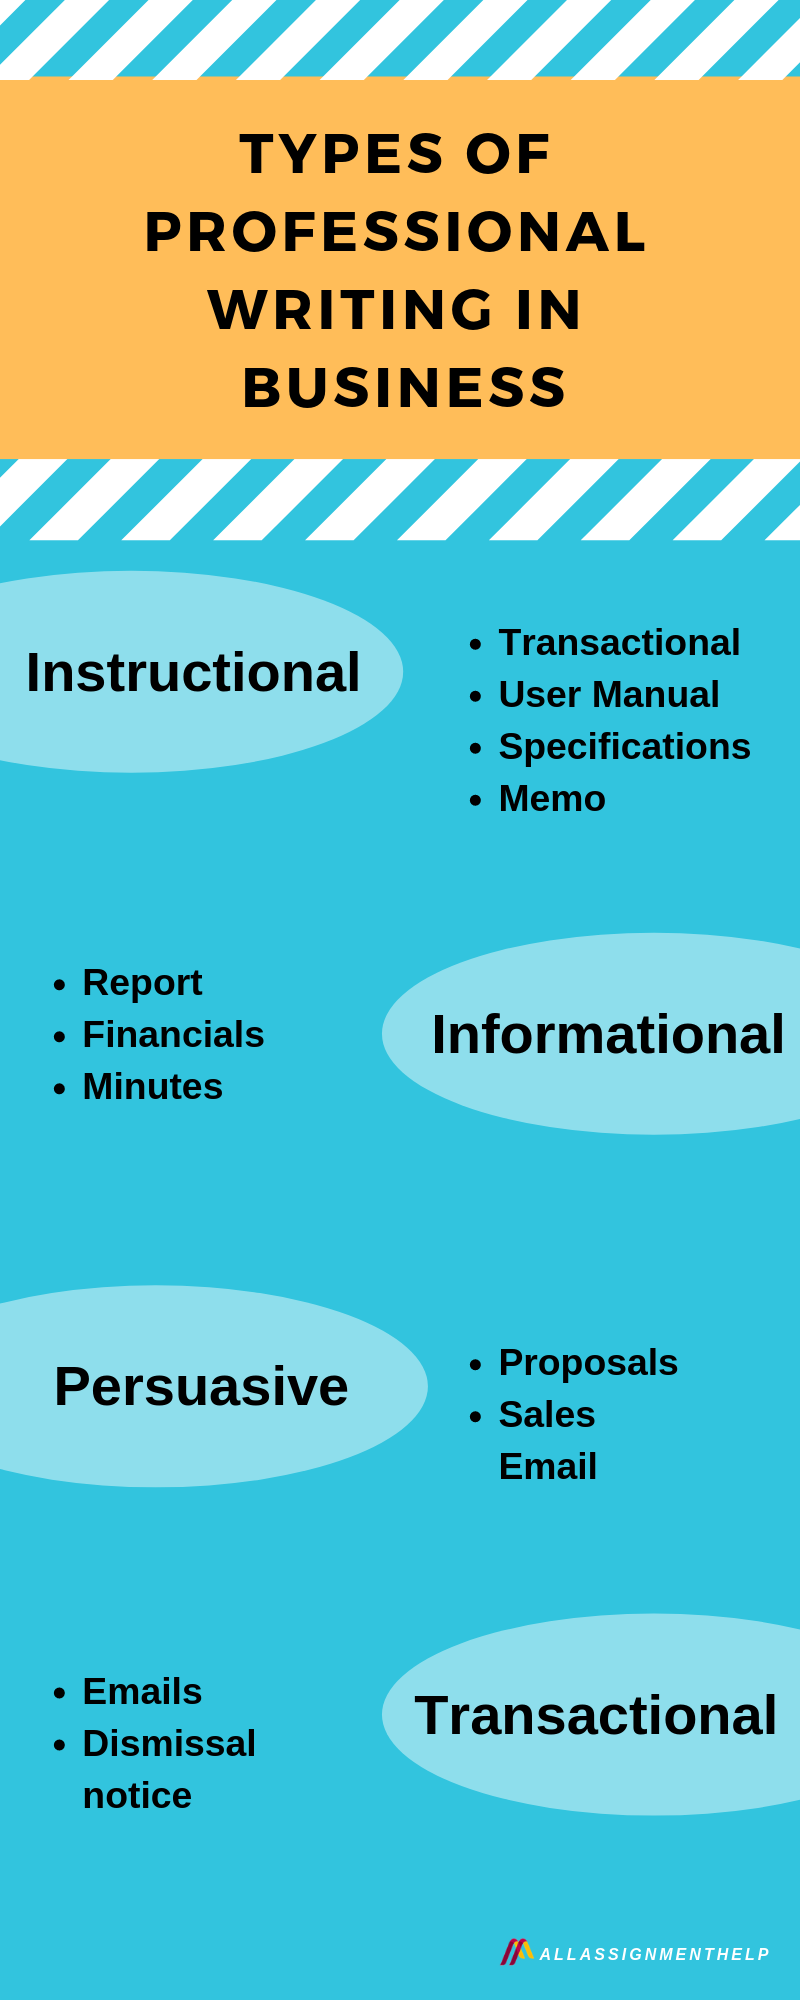 types of professional writing.png